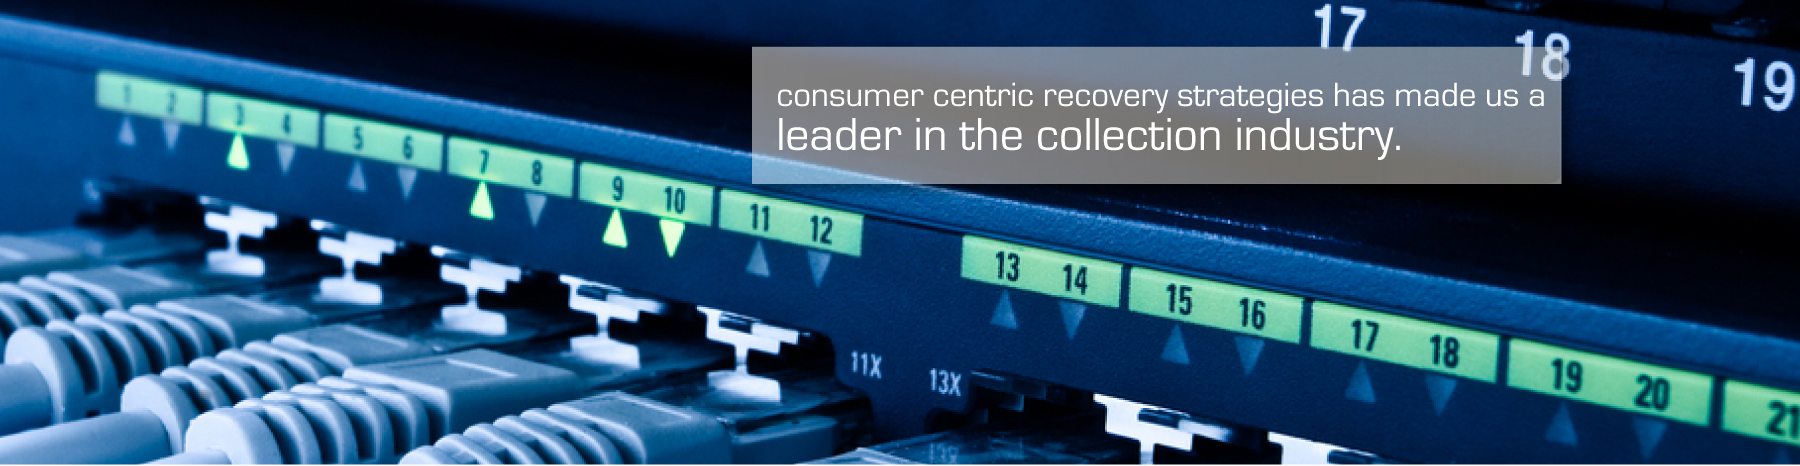 CCB Credit Services consumer-centric recovery strategies has made us a leader in the collection industry.